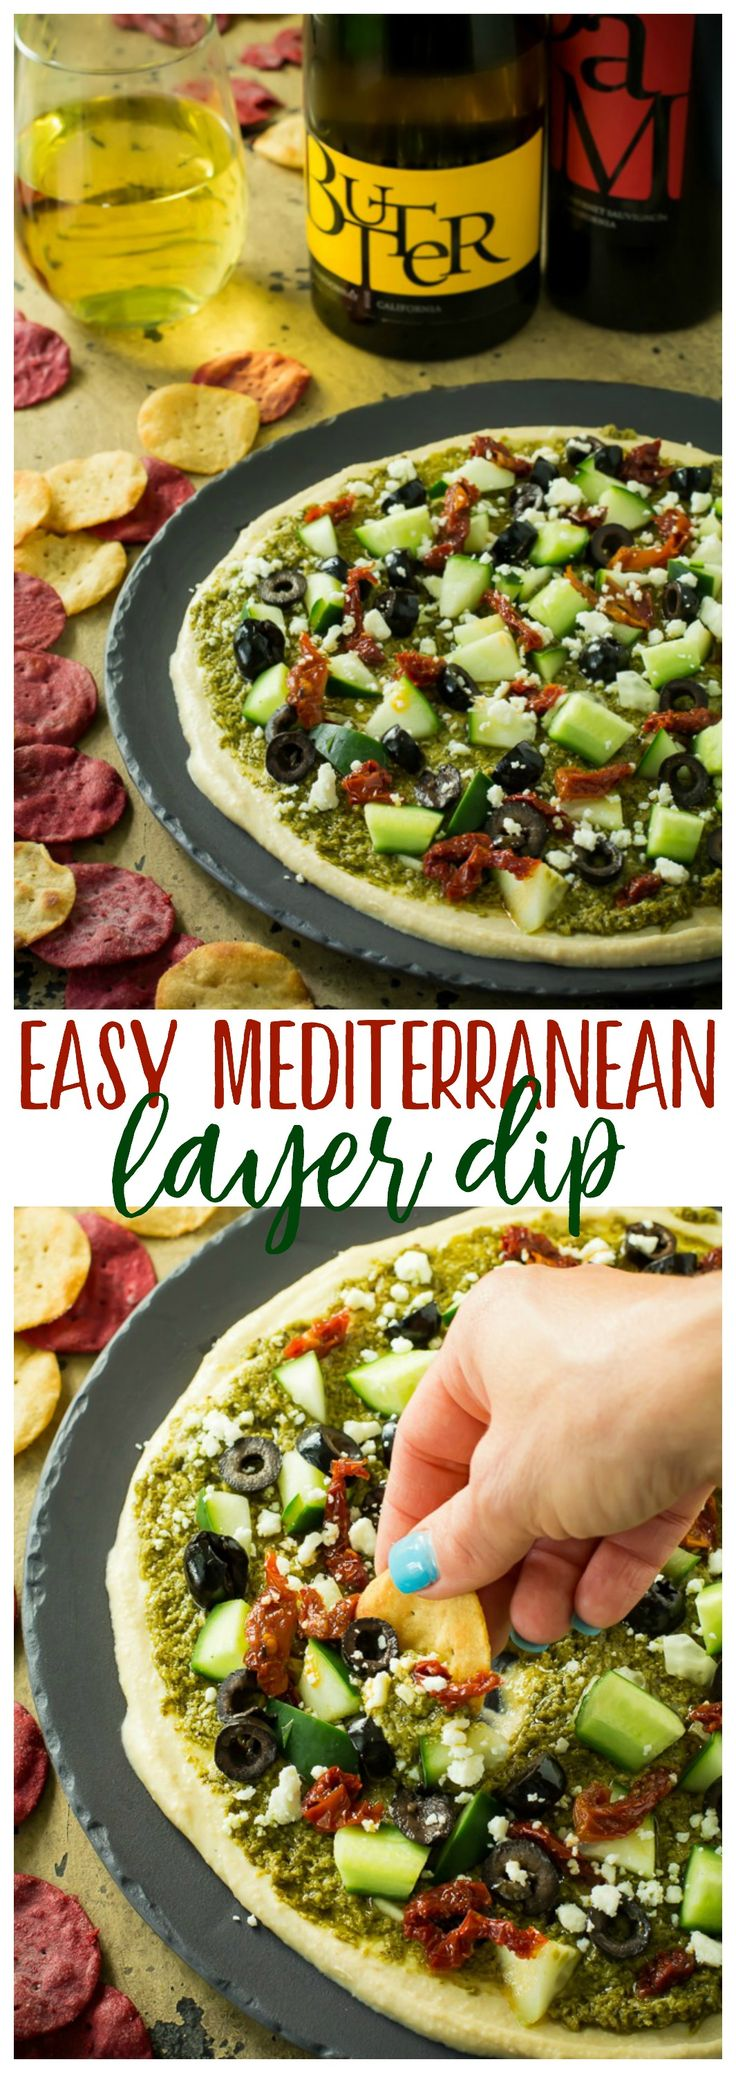 A healthy, tasty, easy Mediterranean layer dip recipe that is a great appetizer or wholesome snack. Loaded with goodies, like hummus, pesto, feta, olives and sun-dried tomatoes. Just don't forget the easy-to-love, witty and fun JaM Cellars! #JaMwinetime 21+ #ad